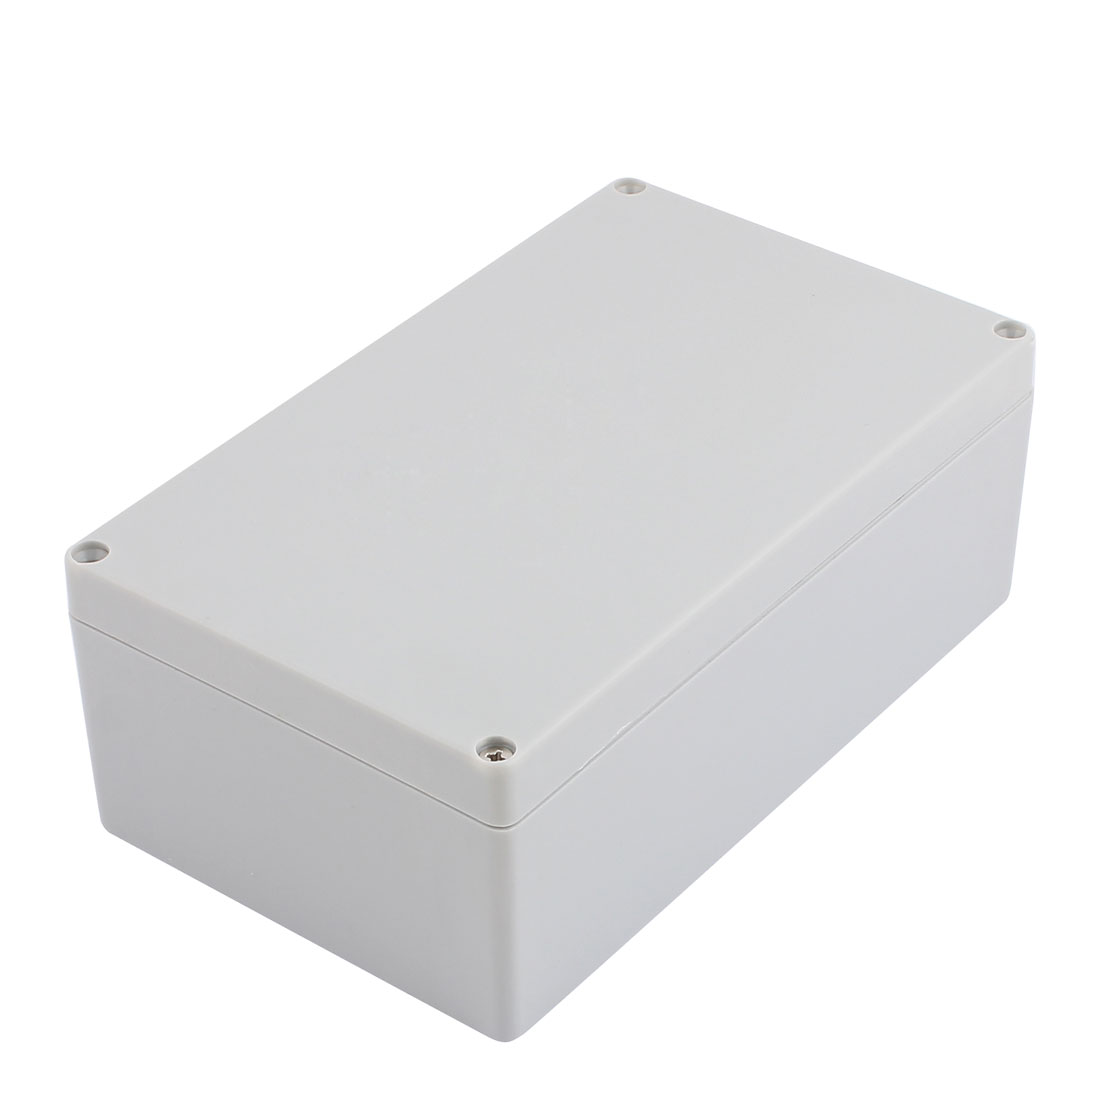 Dustproof IP65 Junction Box Case DIY Terminal Connect Enclosure Adaptable 192mm x 112mm x 67mm